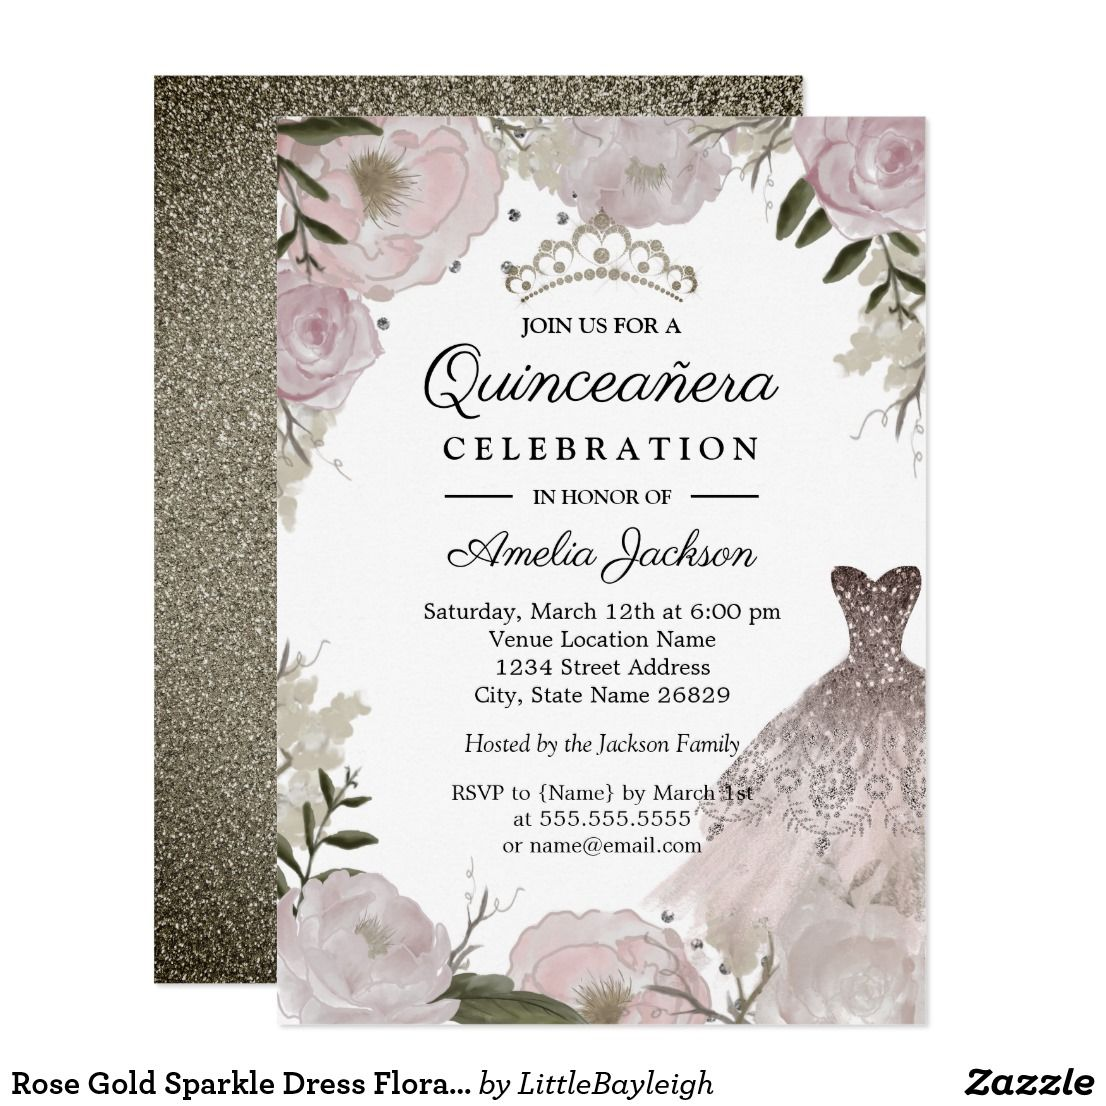 Rose Gold Sparkle Dress Floral Quinceanera Invitation In 2019